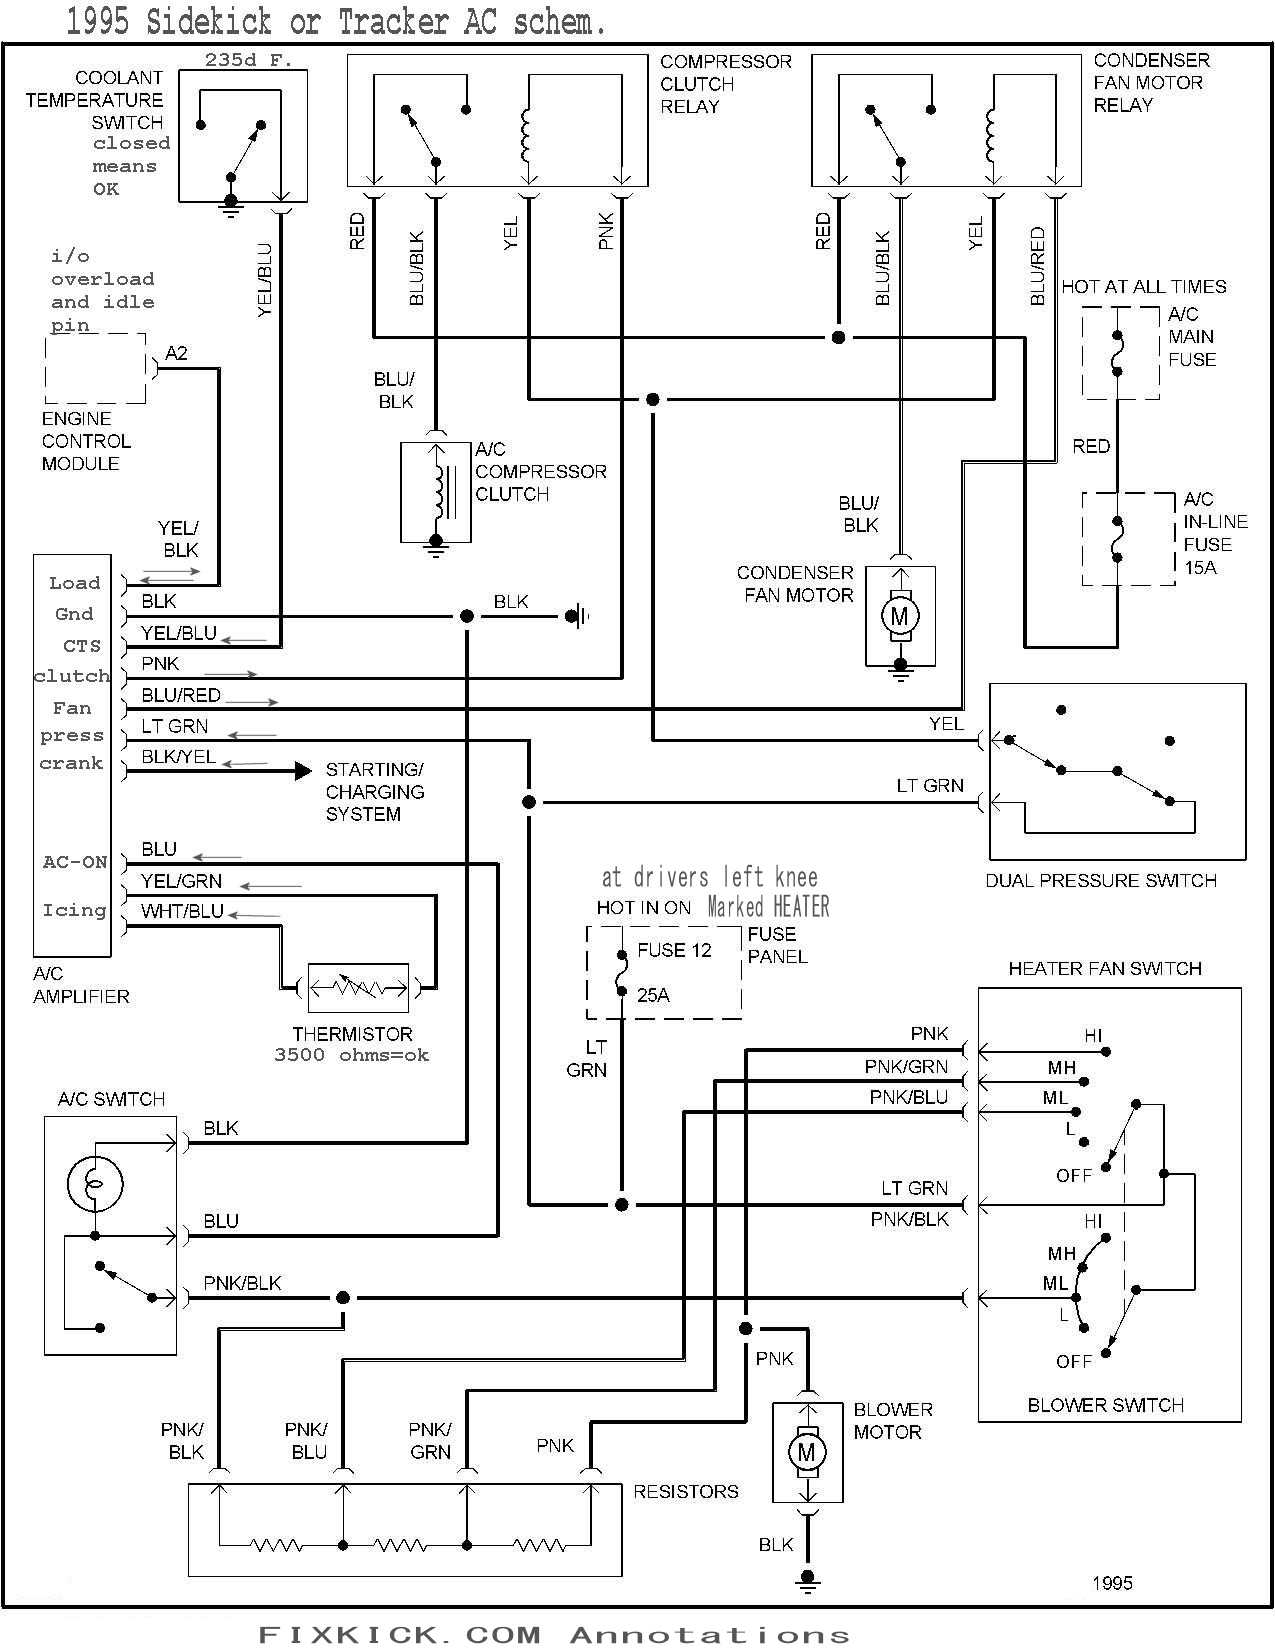 2002 Suzuki Grand Vitara Ac Compressor Wiring Diagram